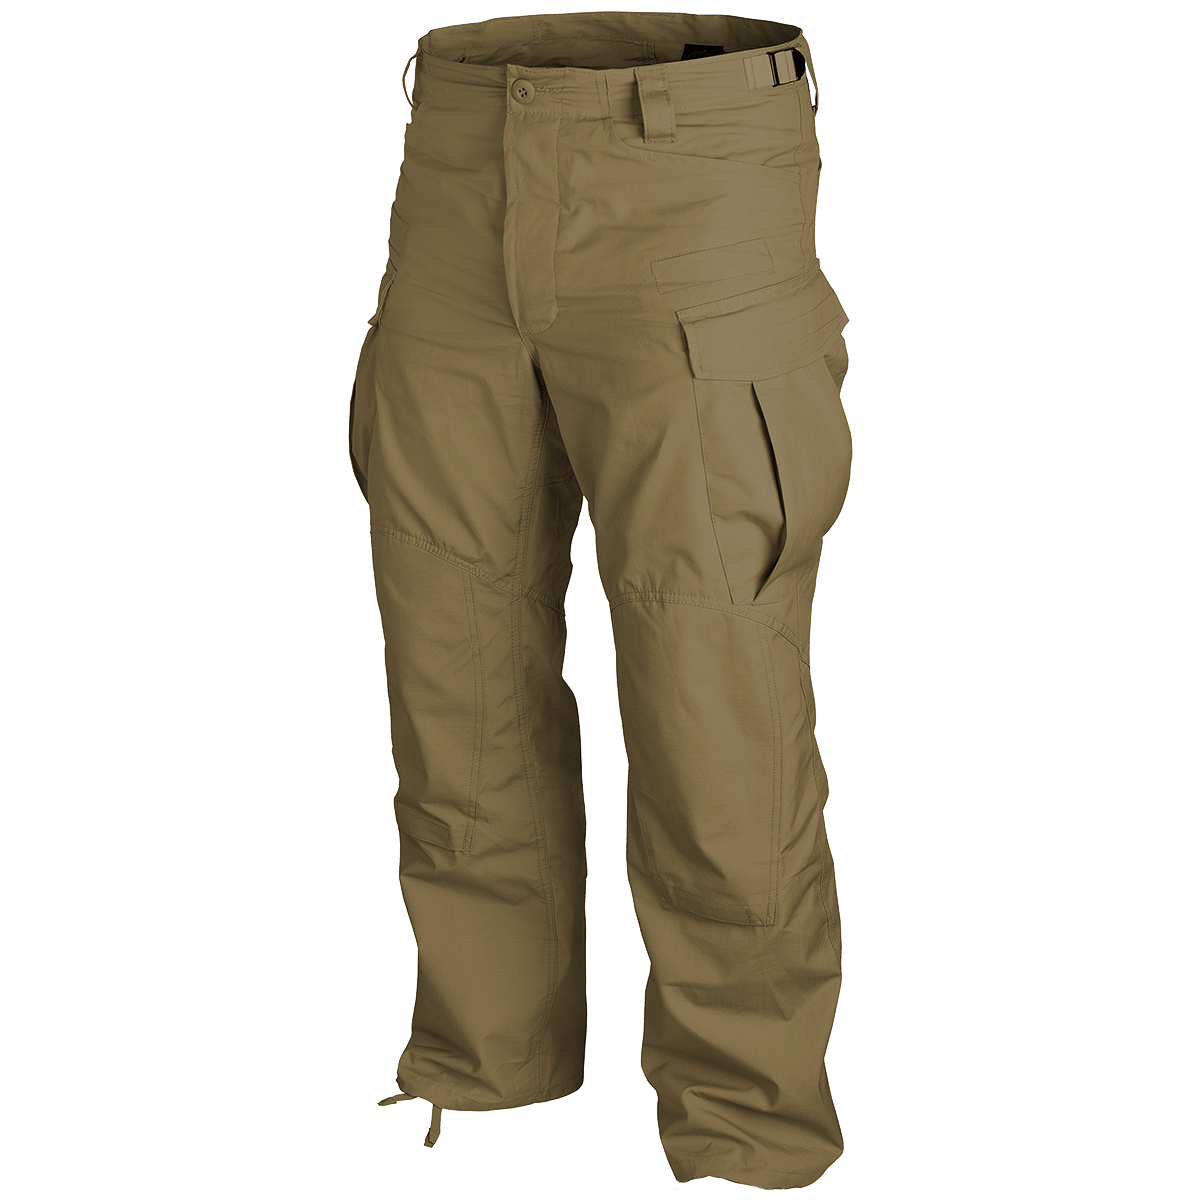 HELIKON SFU CARGO MENS COMBAT TROUSERS ARMY TACTICAL PANTS ...